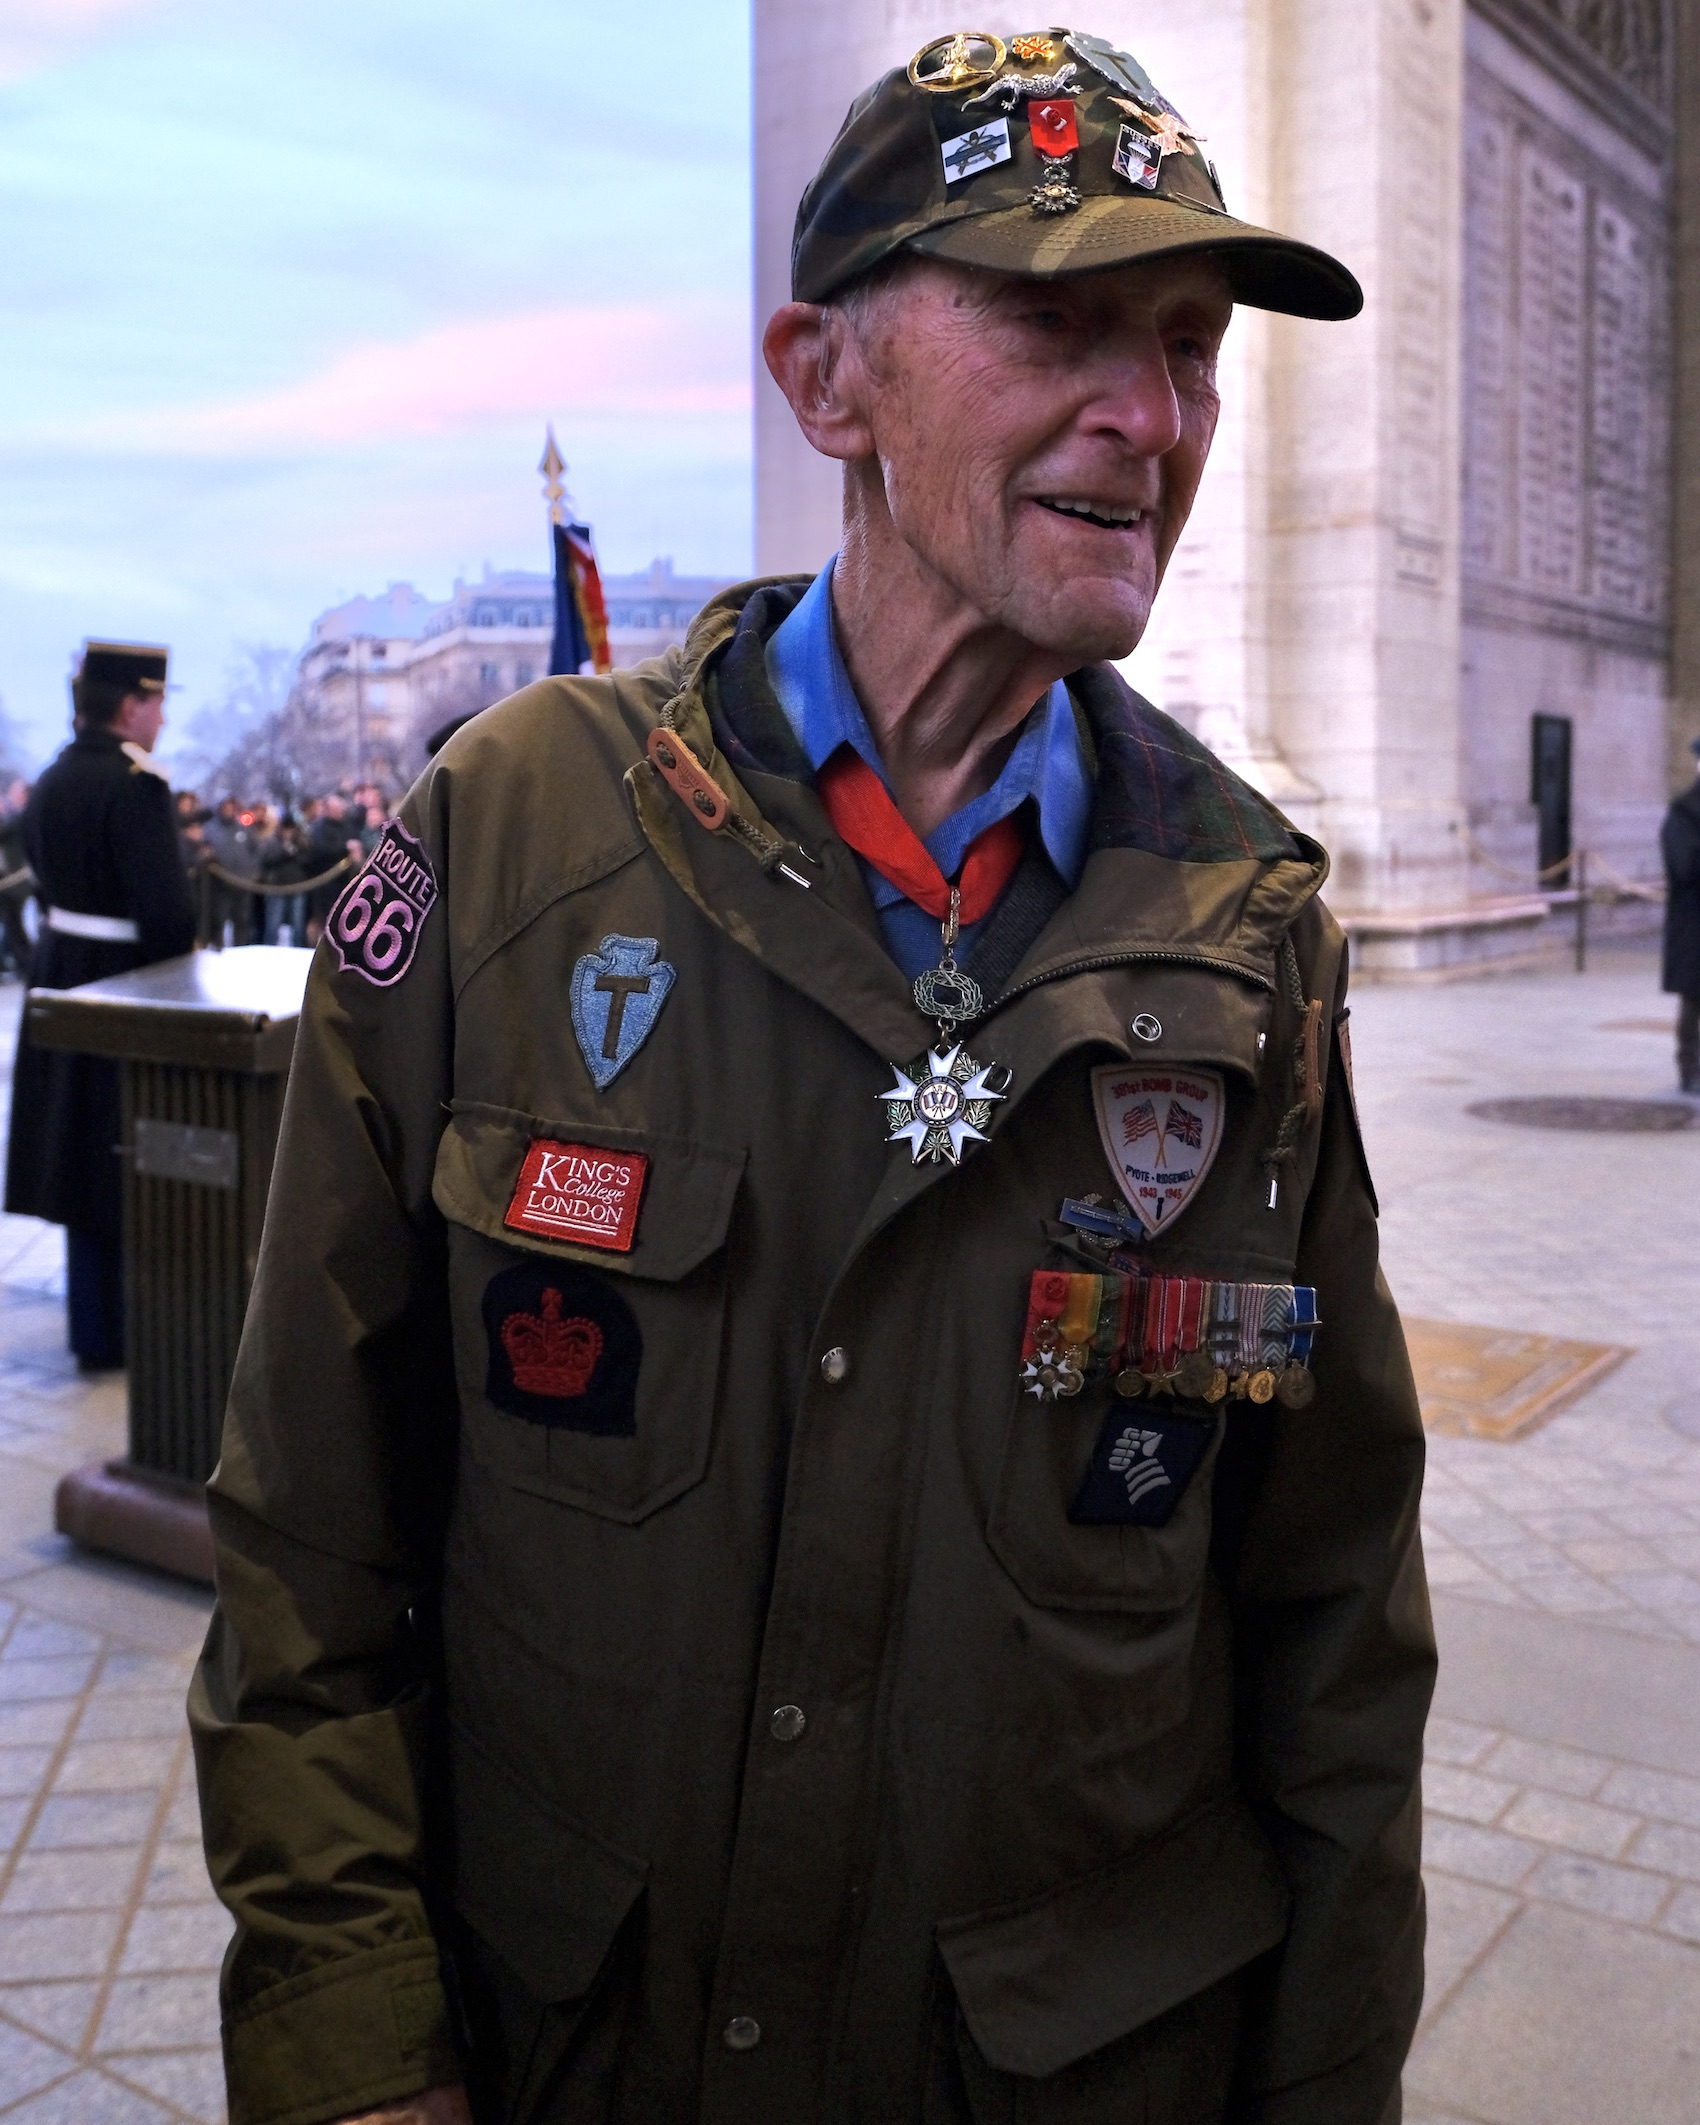 WWII Veteran Dr. Stephen Weiss in Paris on his final trip to France